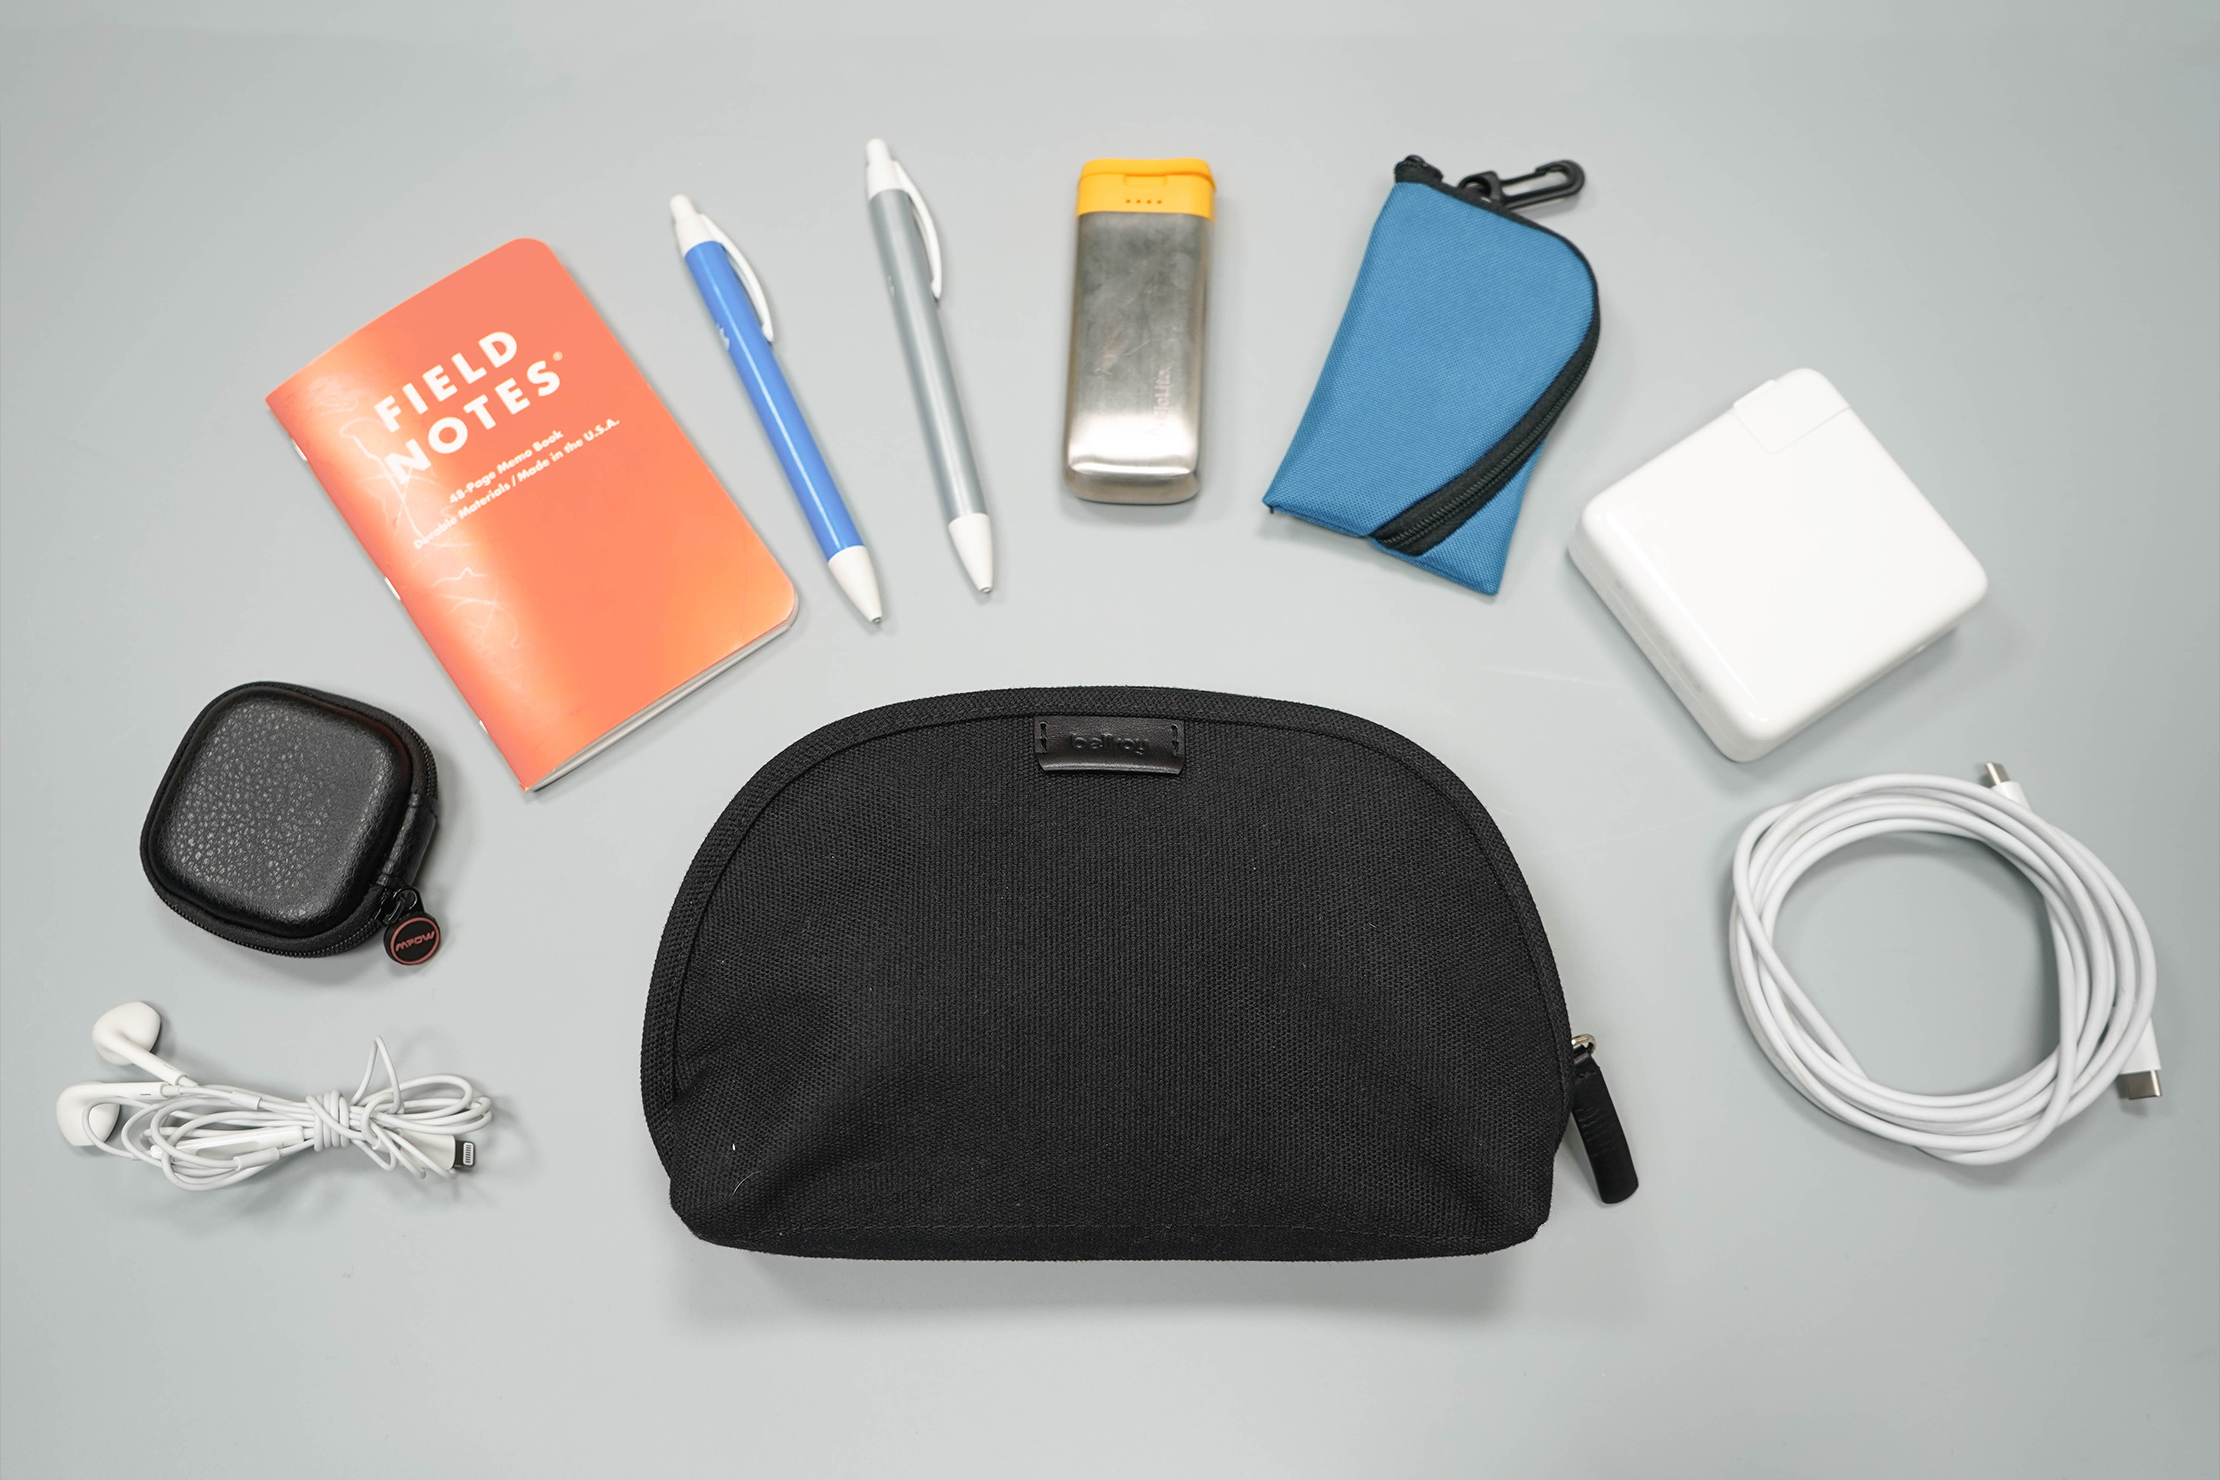 Bellroy Classic Pouch Flat Lay